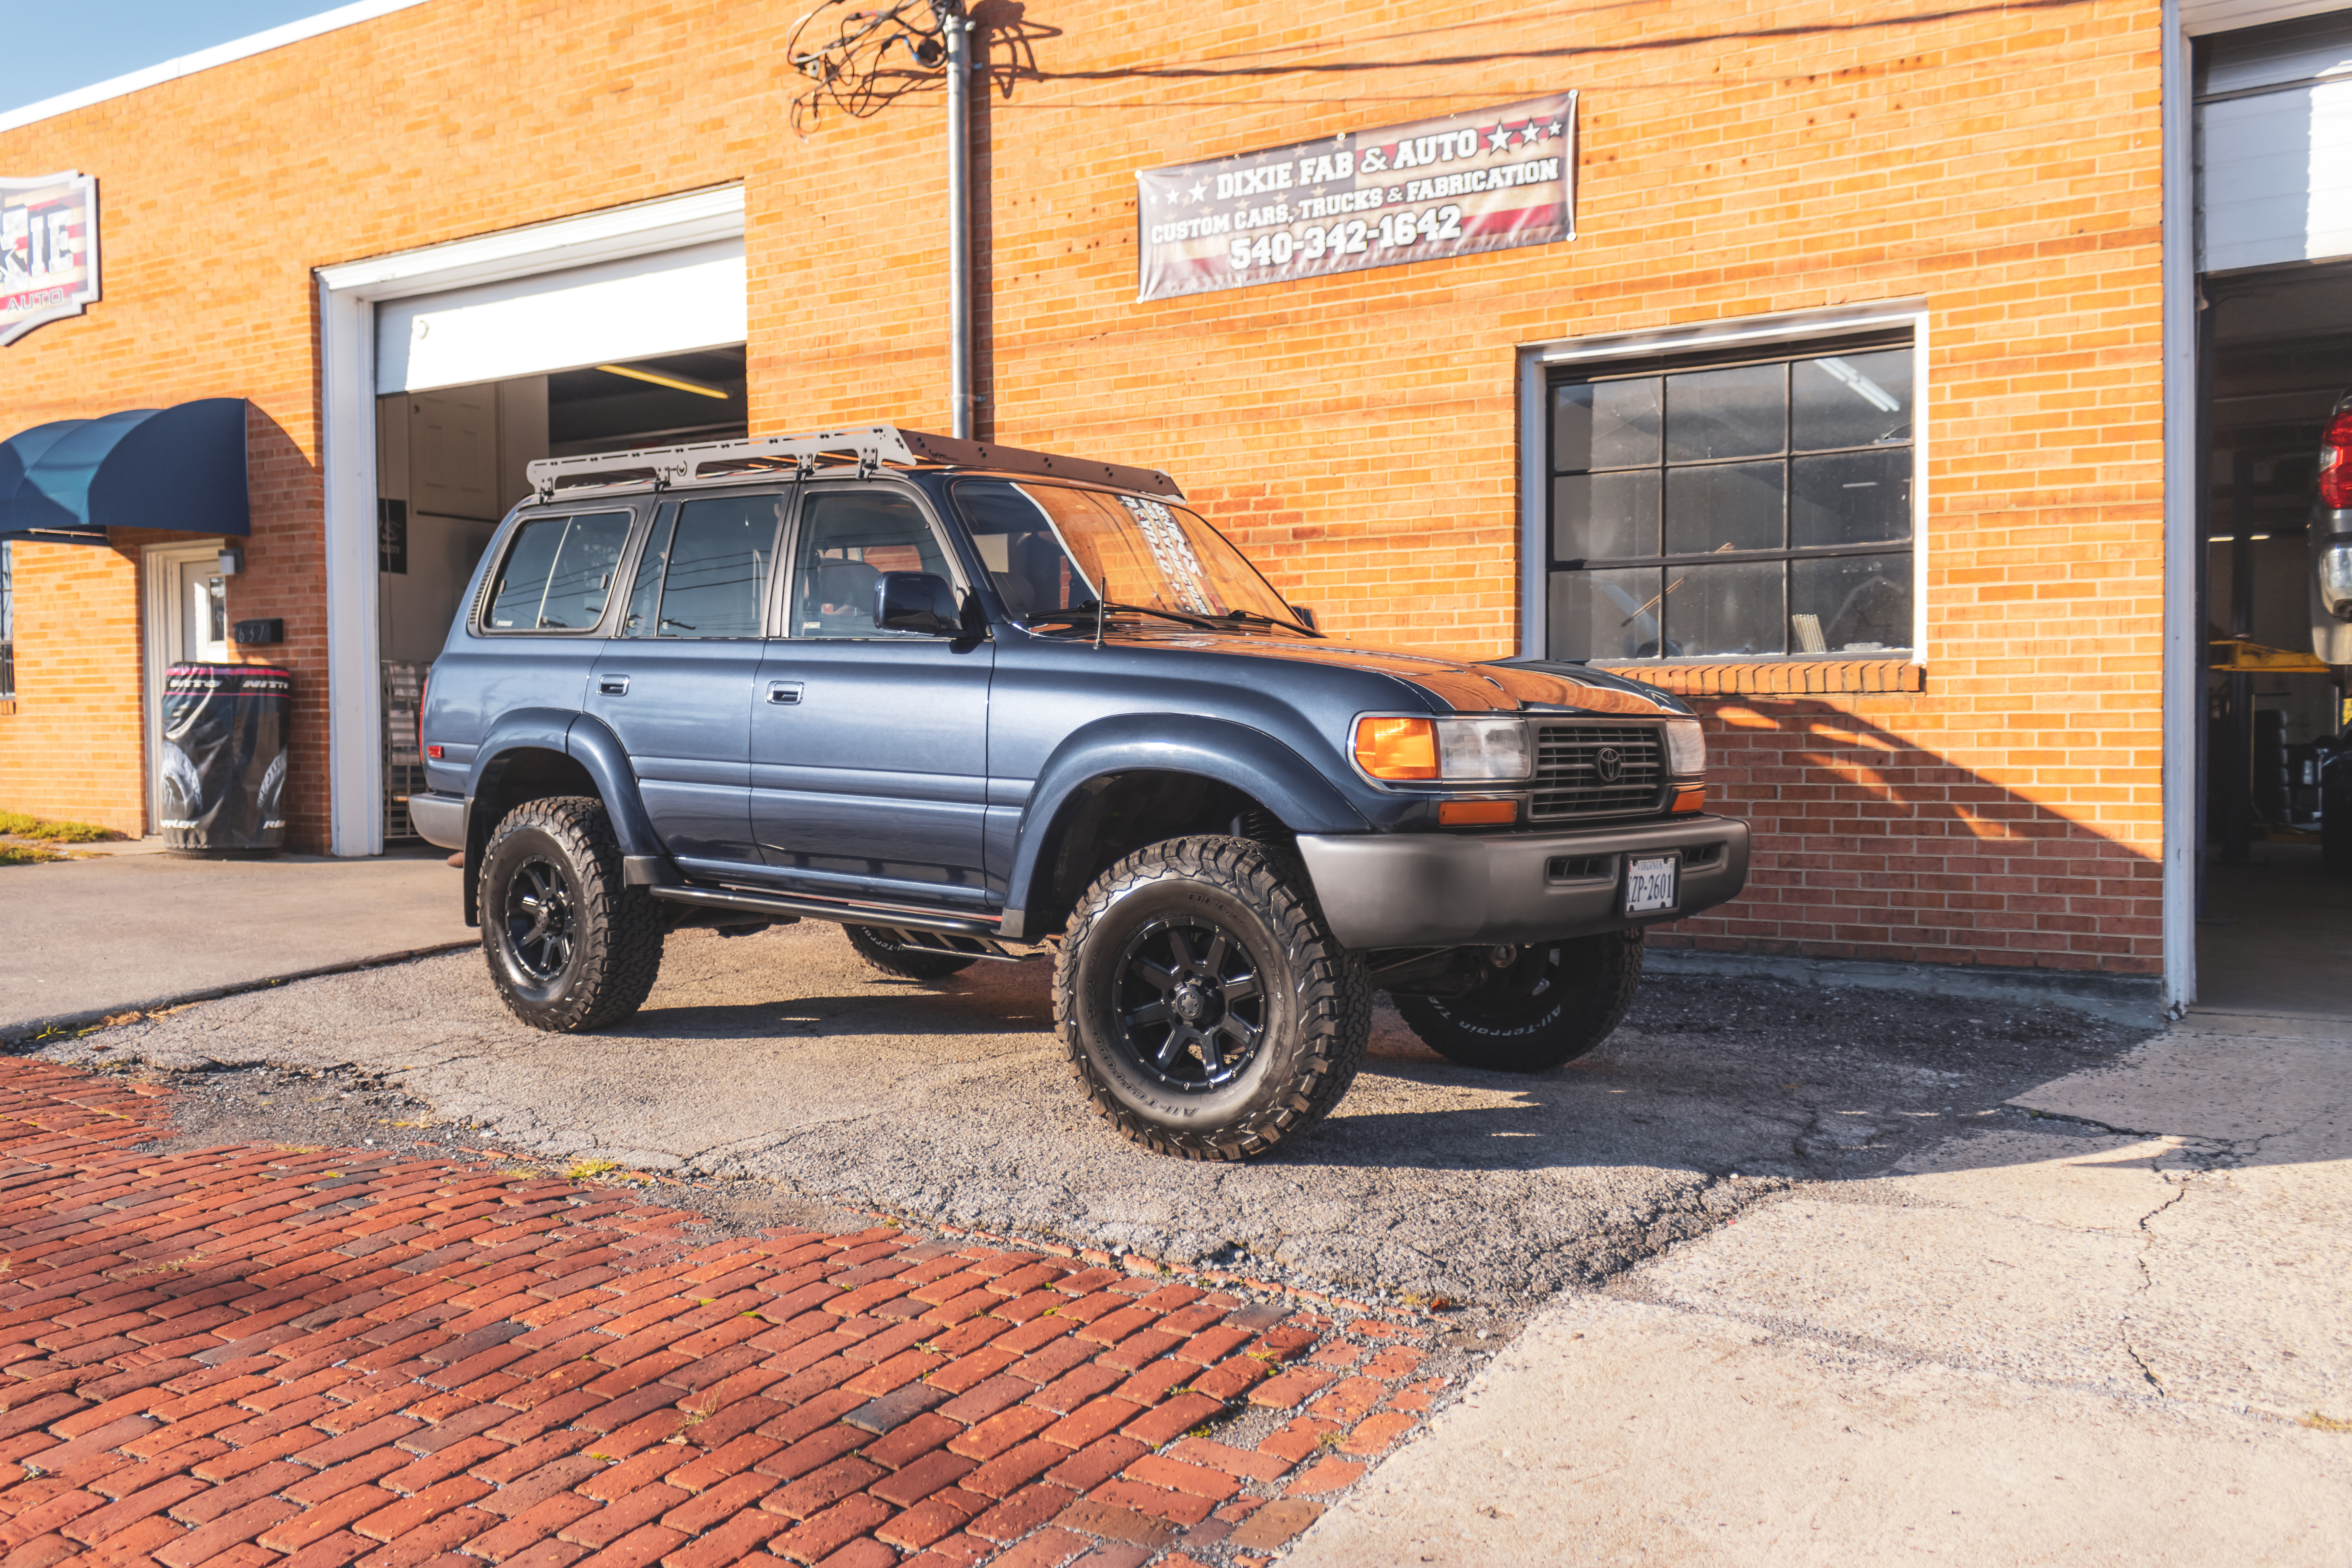 Land Cruiser Lift, Roof rack, and Side s